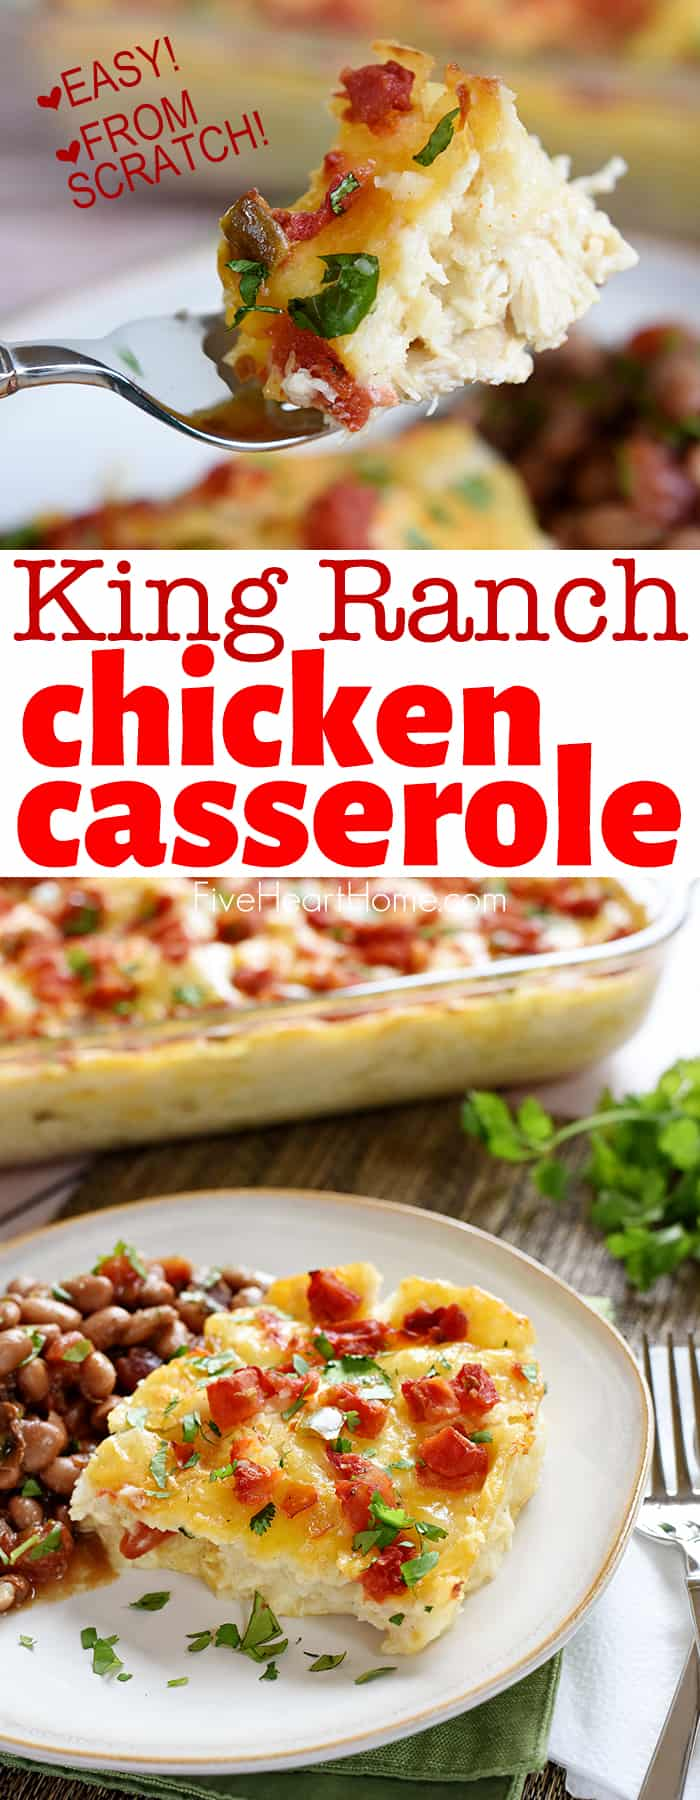 King Ranch Chicken Casserole ~ a cozy, comfort food classic with melty layers of chicken, tortillas, and cheese...and this from-scratch version features a simple homemade sauce with NO canned condensed soups! | FiveHeartHome.com #kingranchchicken #kingranchchickencasserole